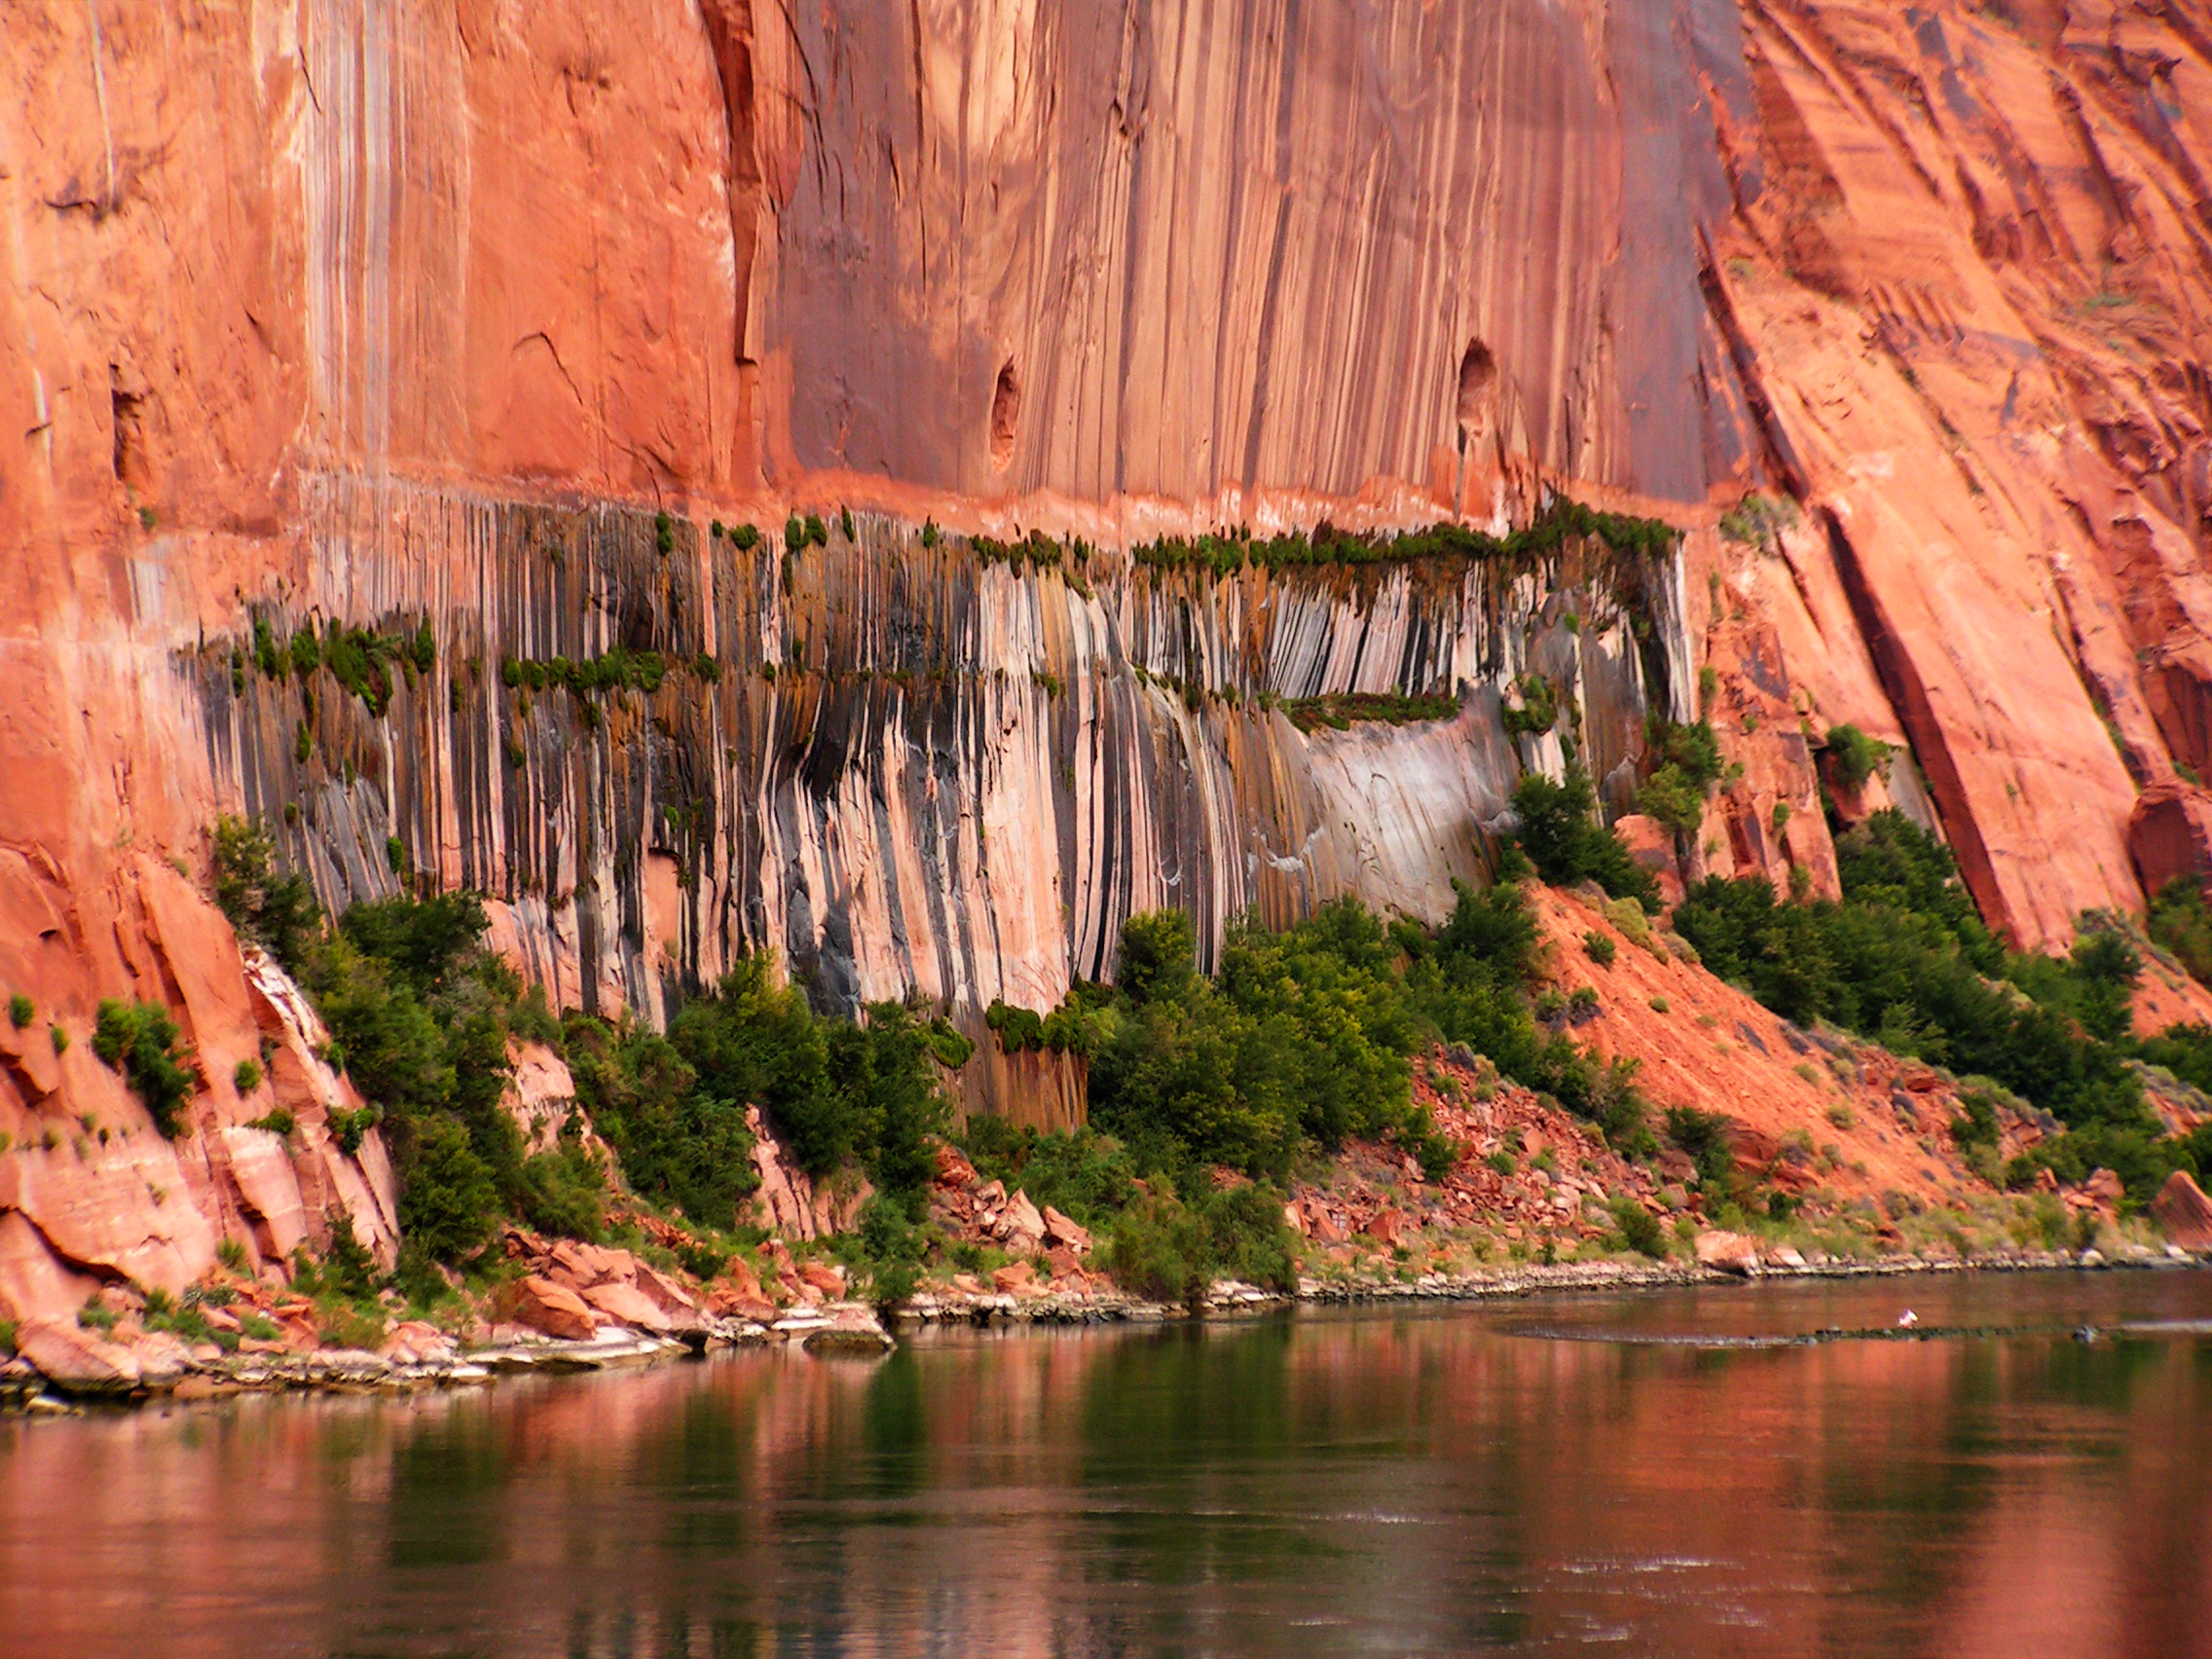 Glen Canyon Dam, Hanging Gardens. Photo by Rich Rudow